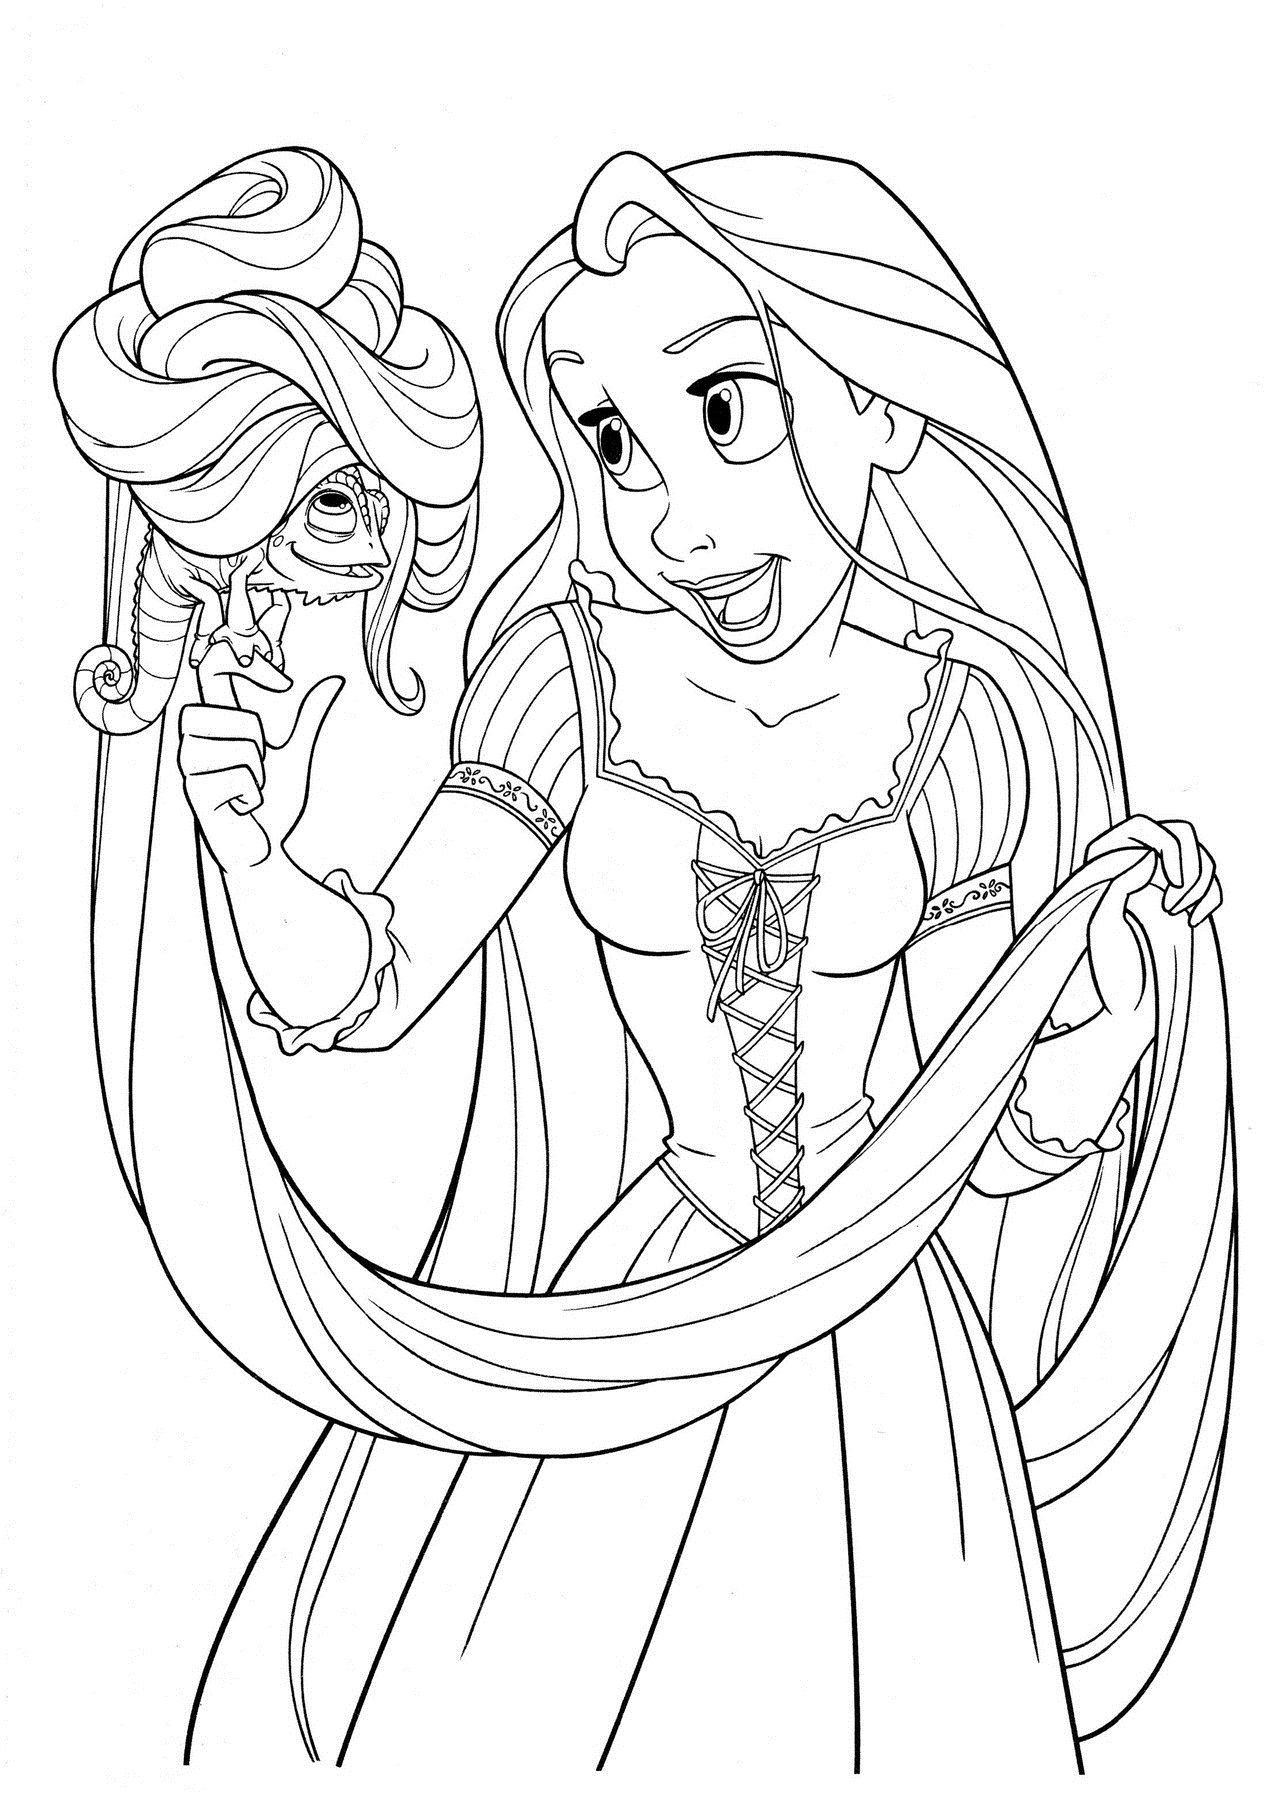 Disney Rapunzel Coloring Pages Free Rapunzel Coloring Pages Tangled Coloring Pages Cartoon Coloring Pages